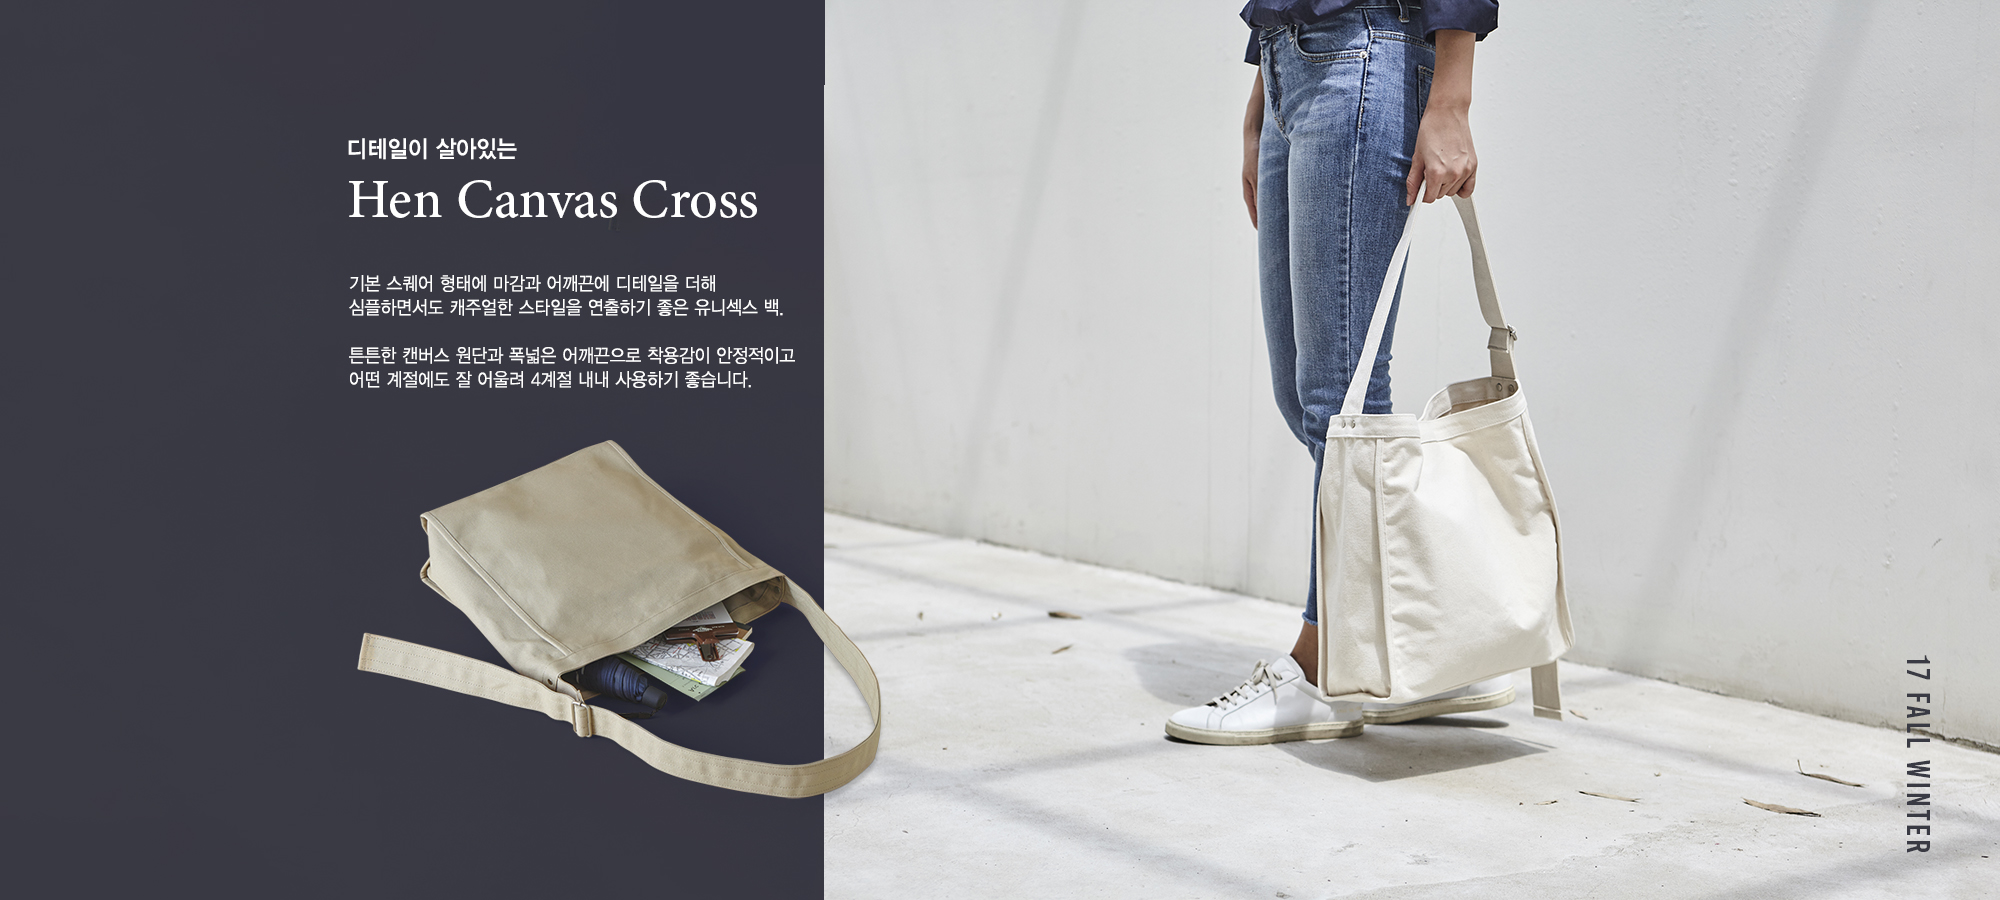 HEN CANVAS CROSS